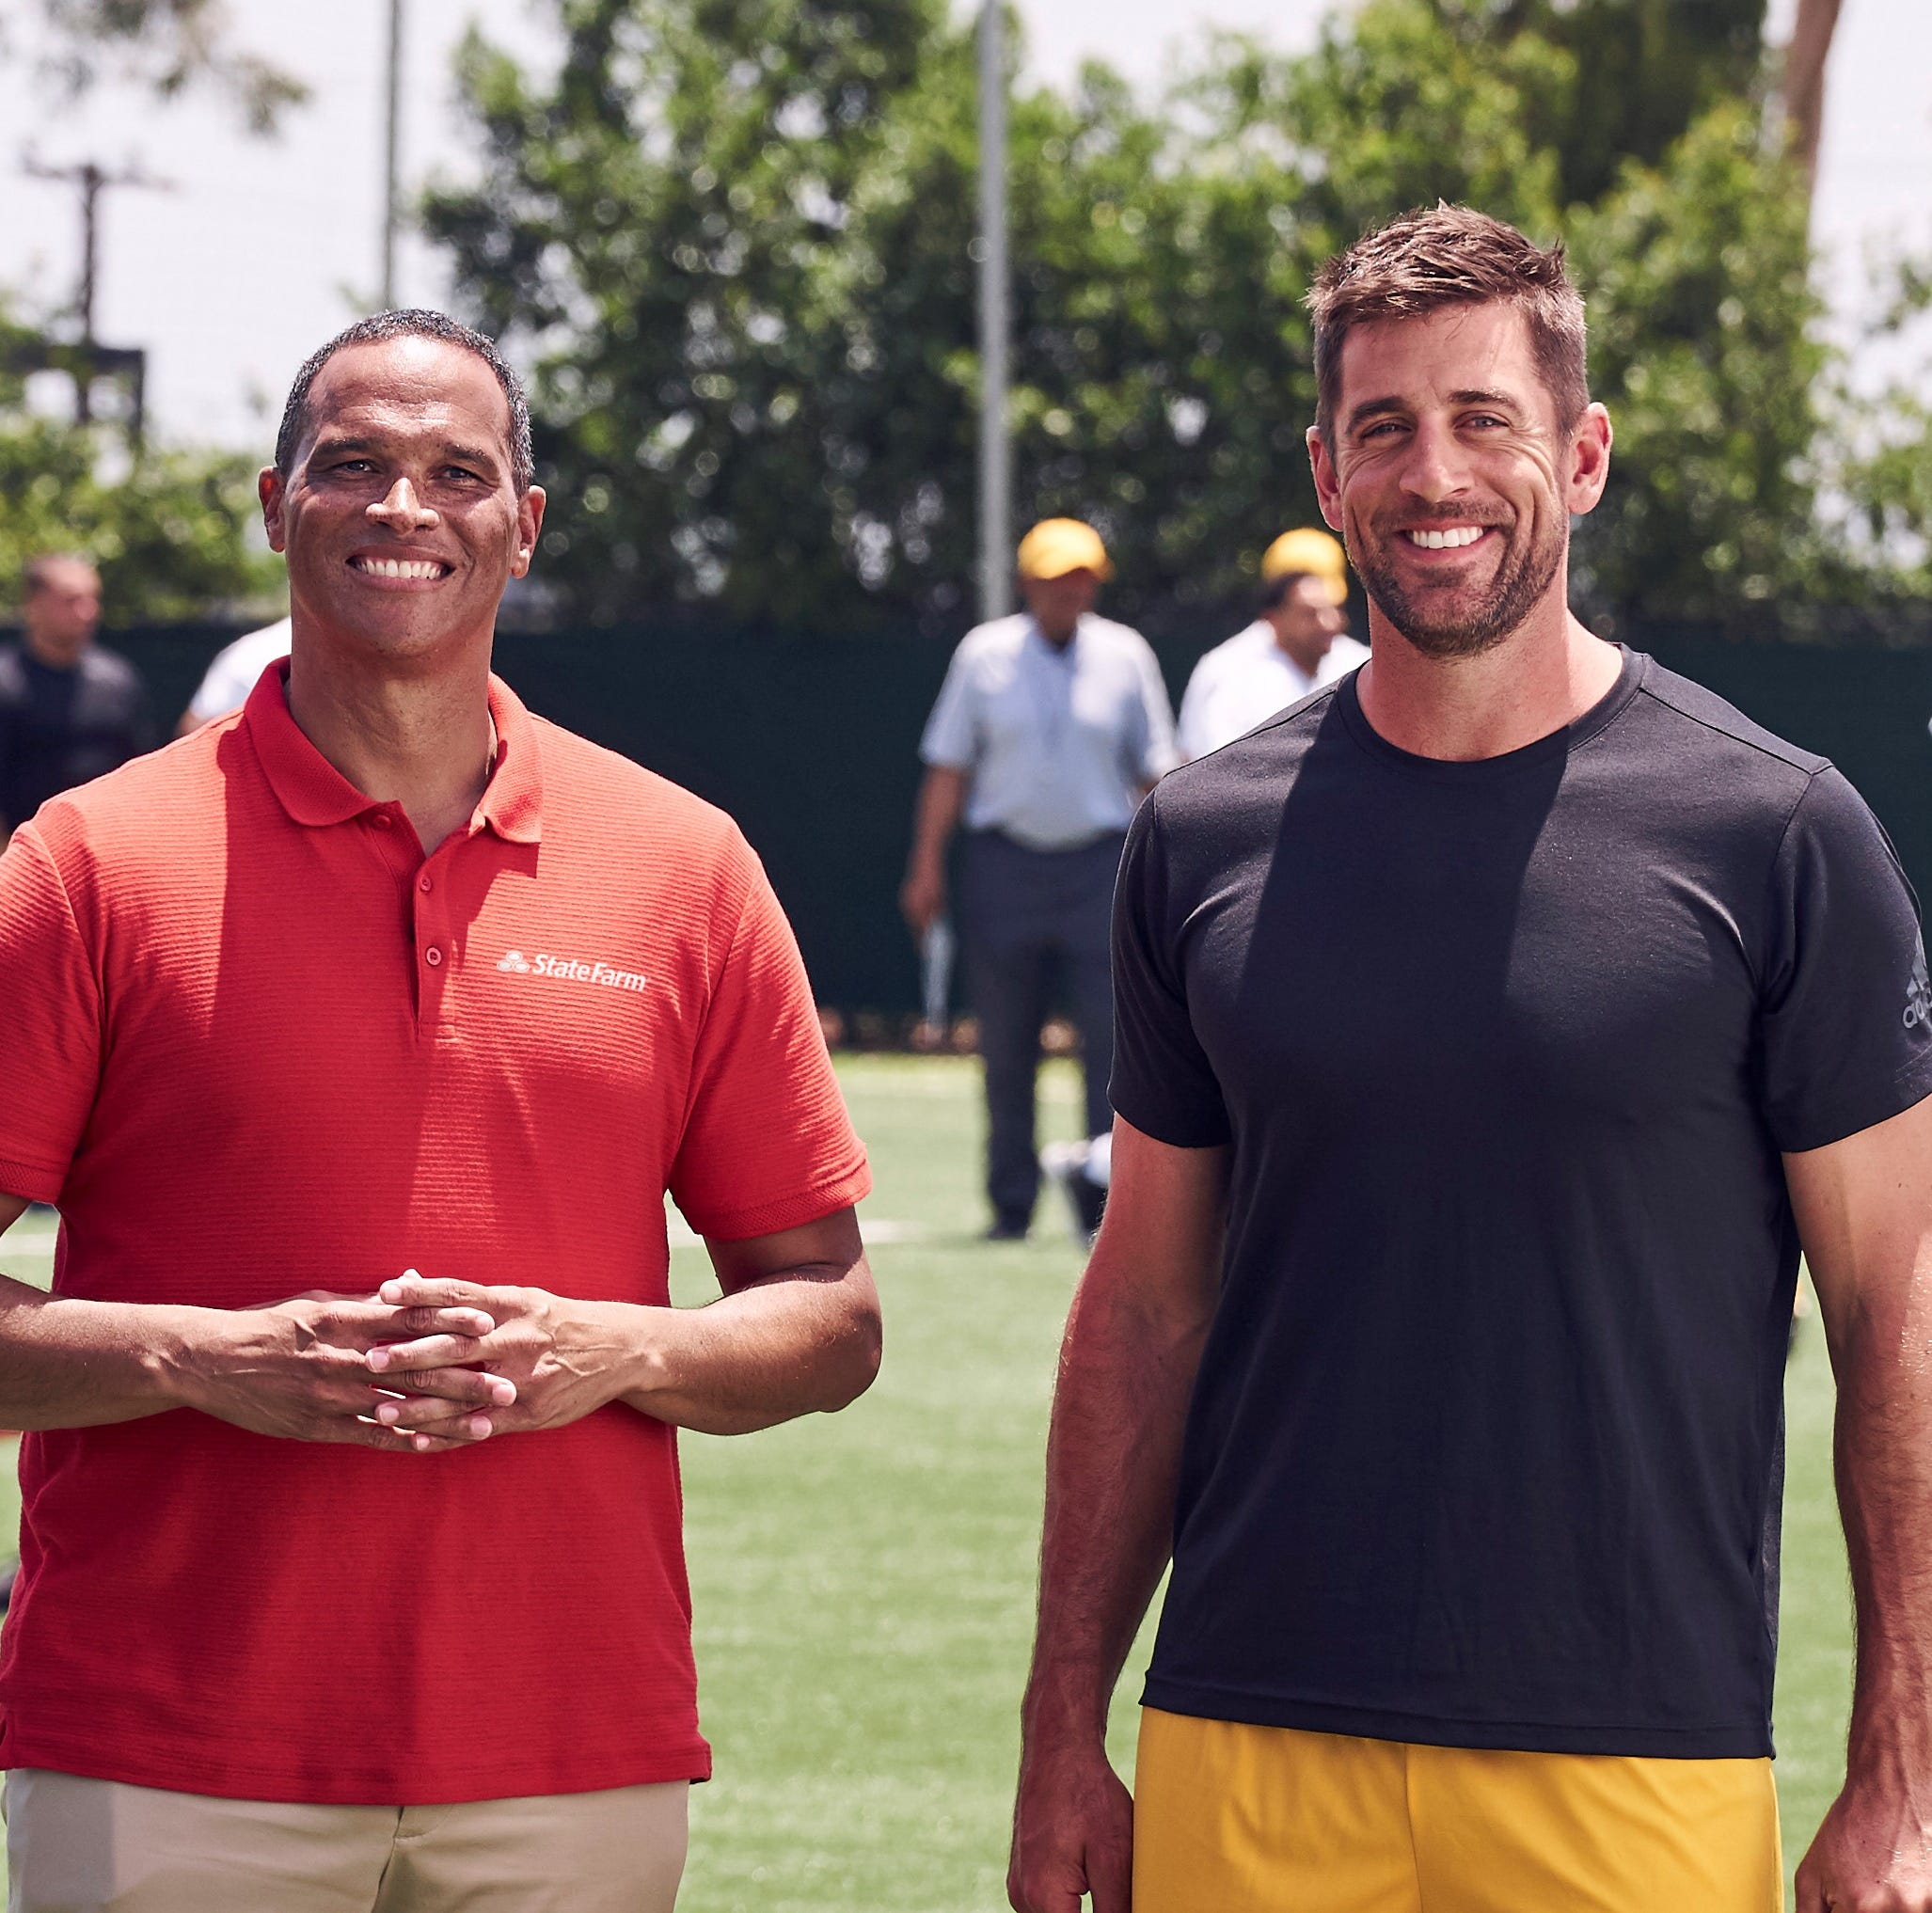 From KATC sportscaster to State Farm star with Aaron Rodgers